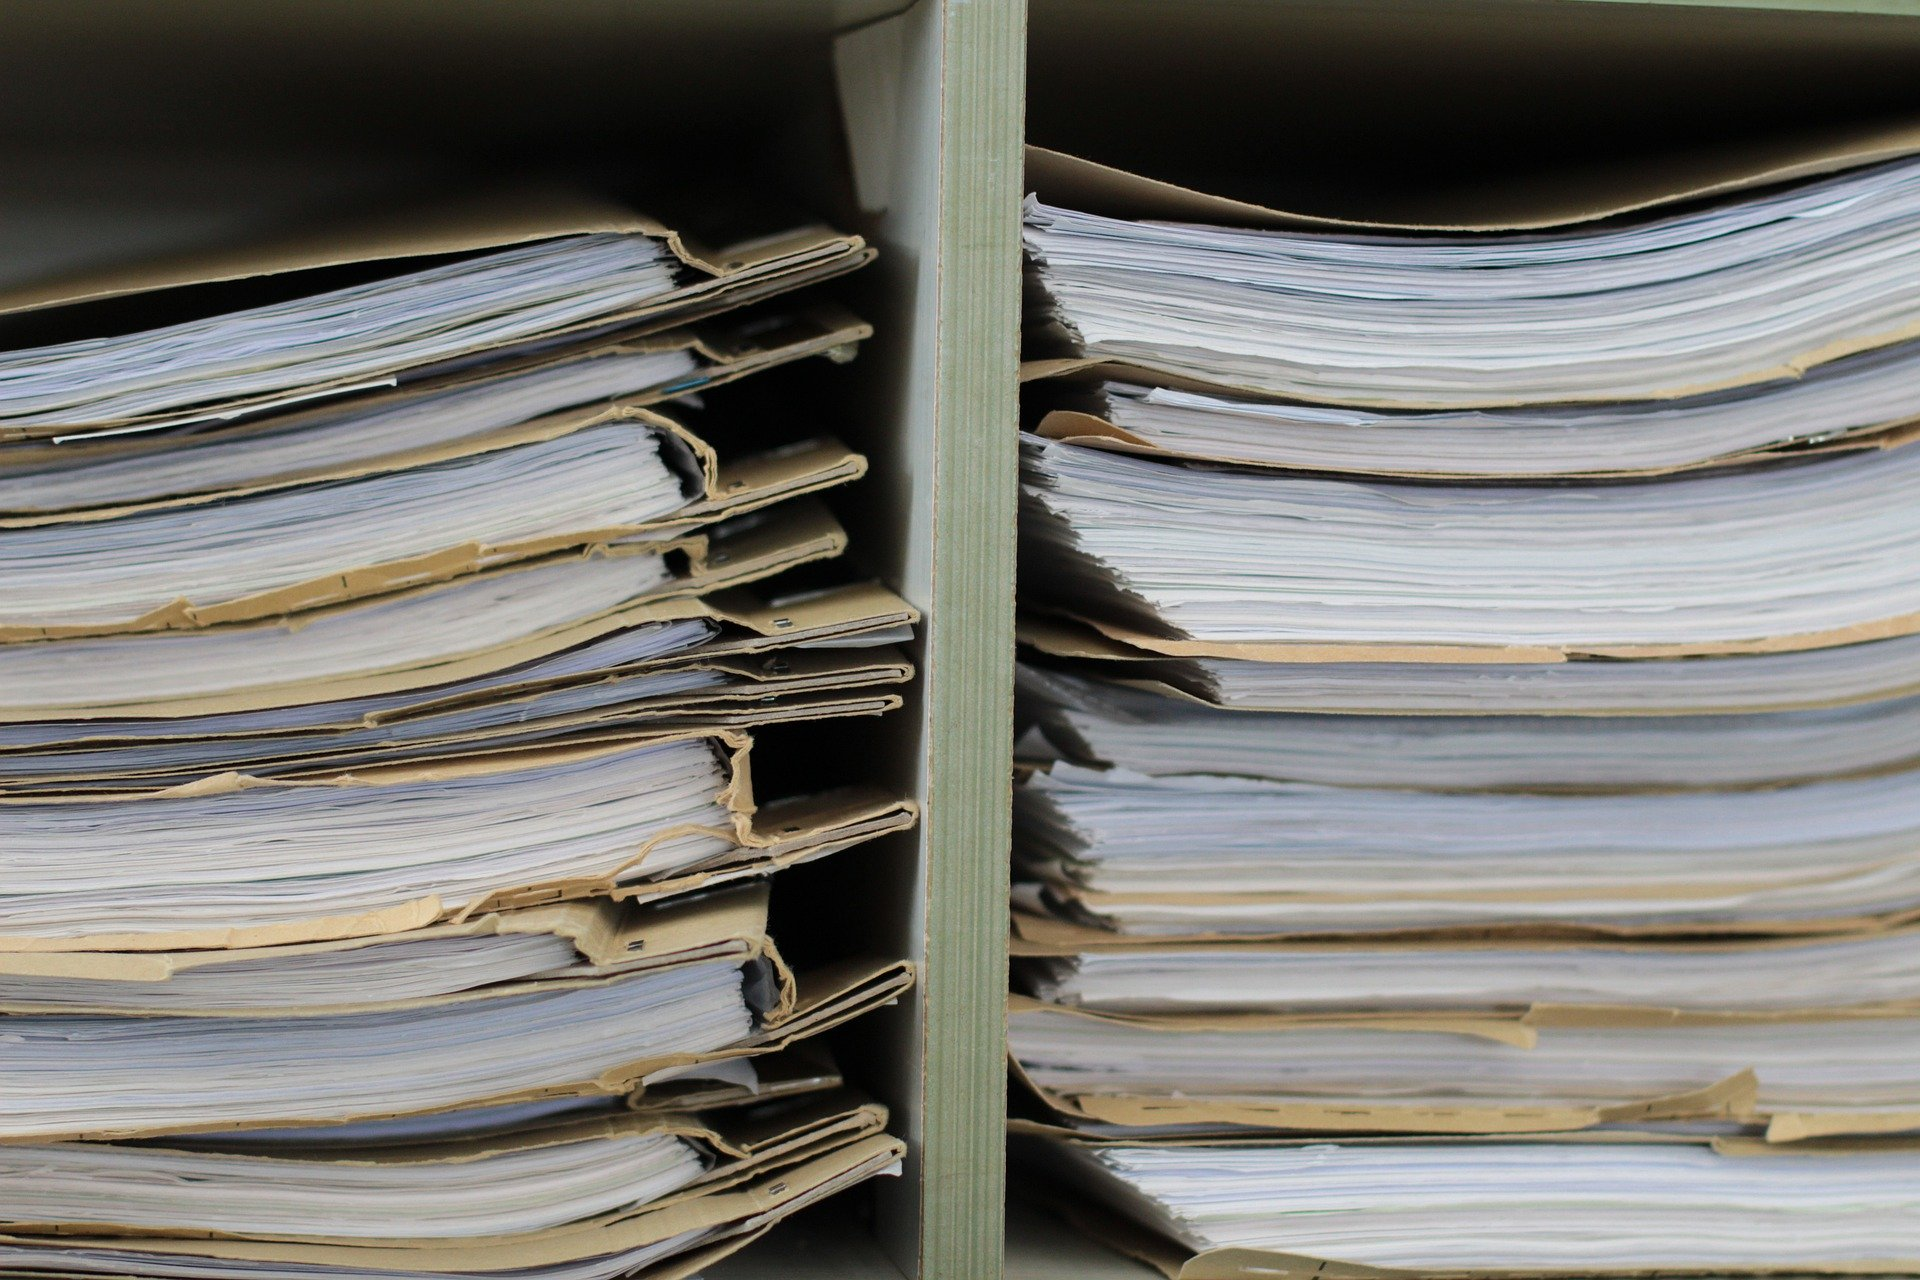 The Home Office has launched a Document Reduction Pilot to reduce the number of documents provided with applications under Appendix FM.